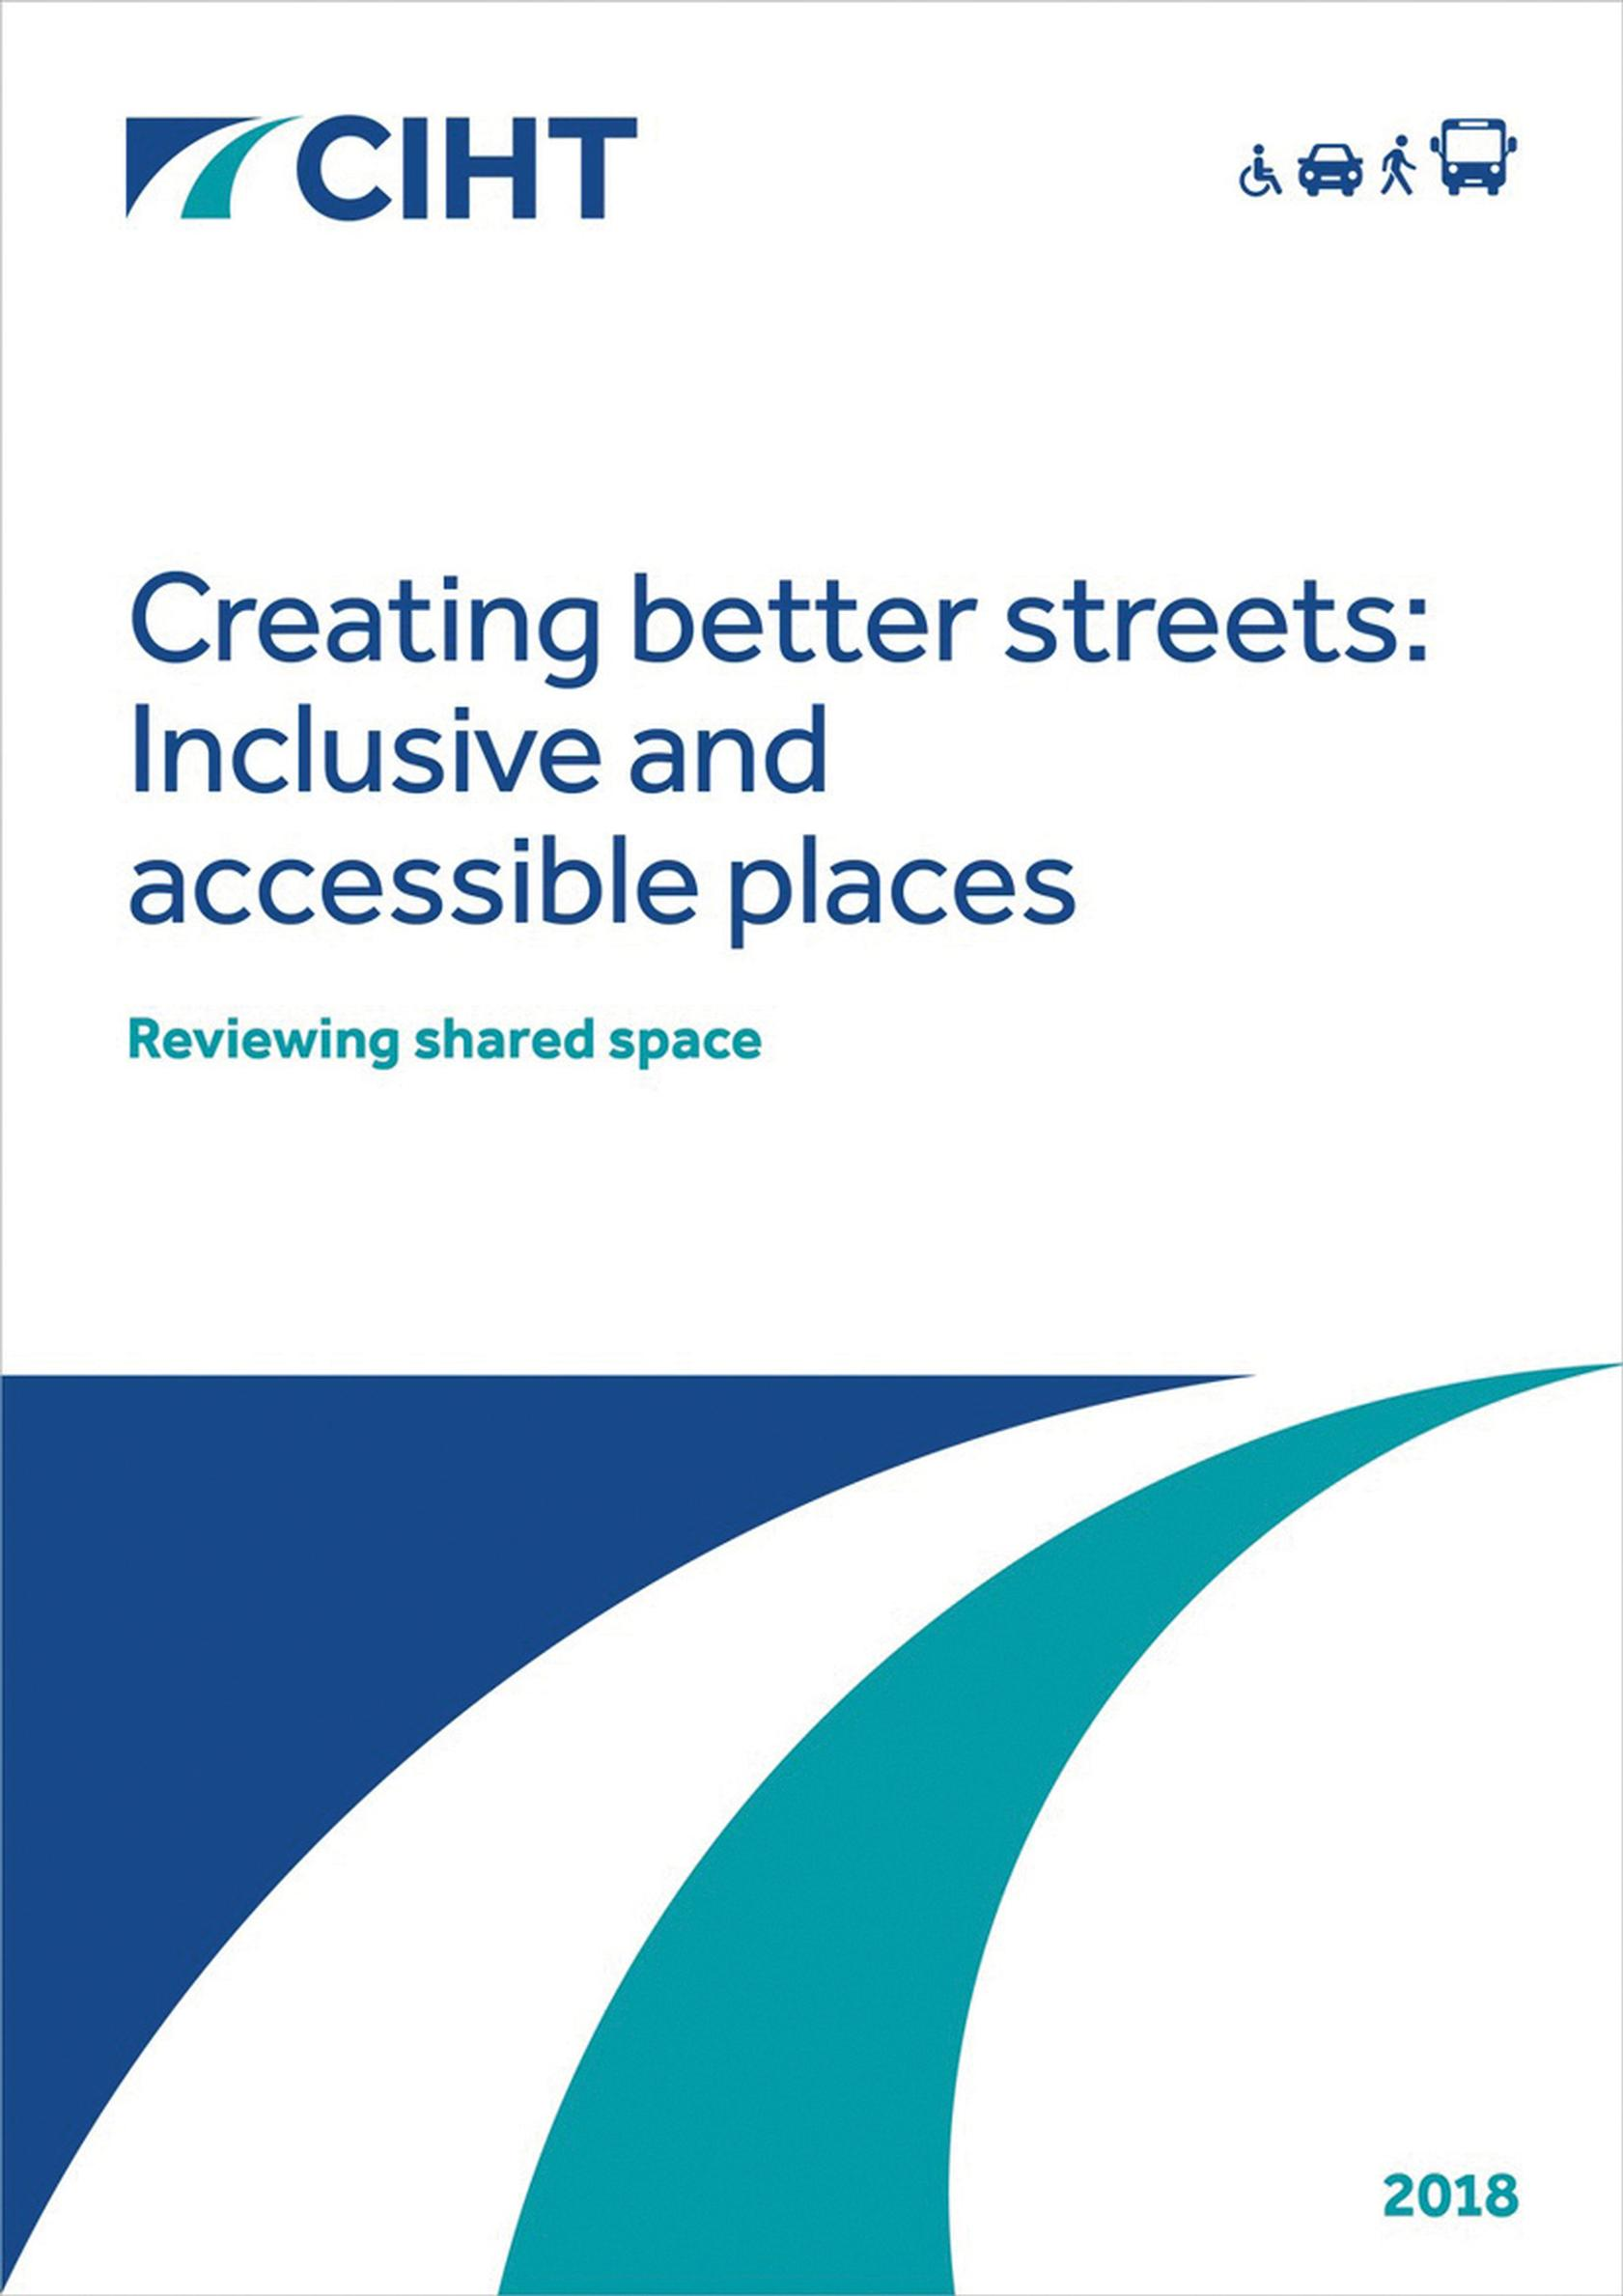 … this review should help in, well, creating better streets that are more inclusive and accessible